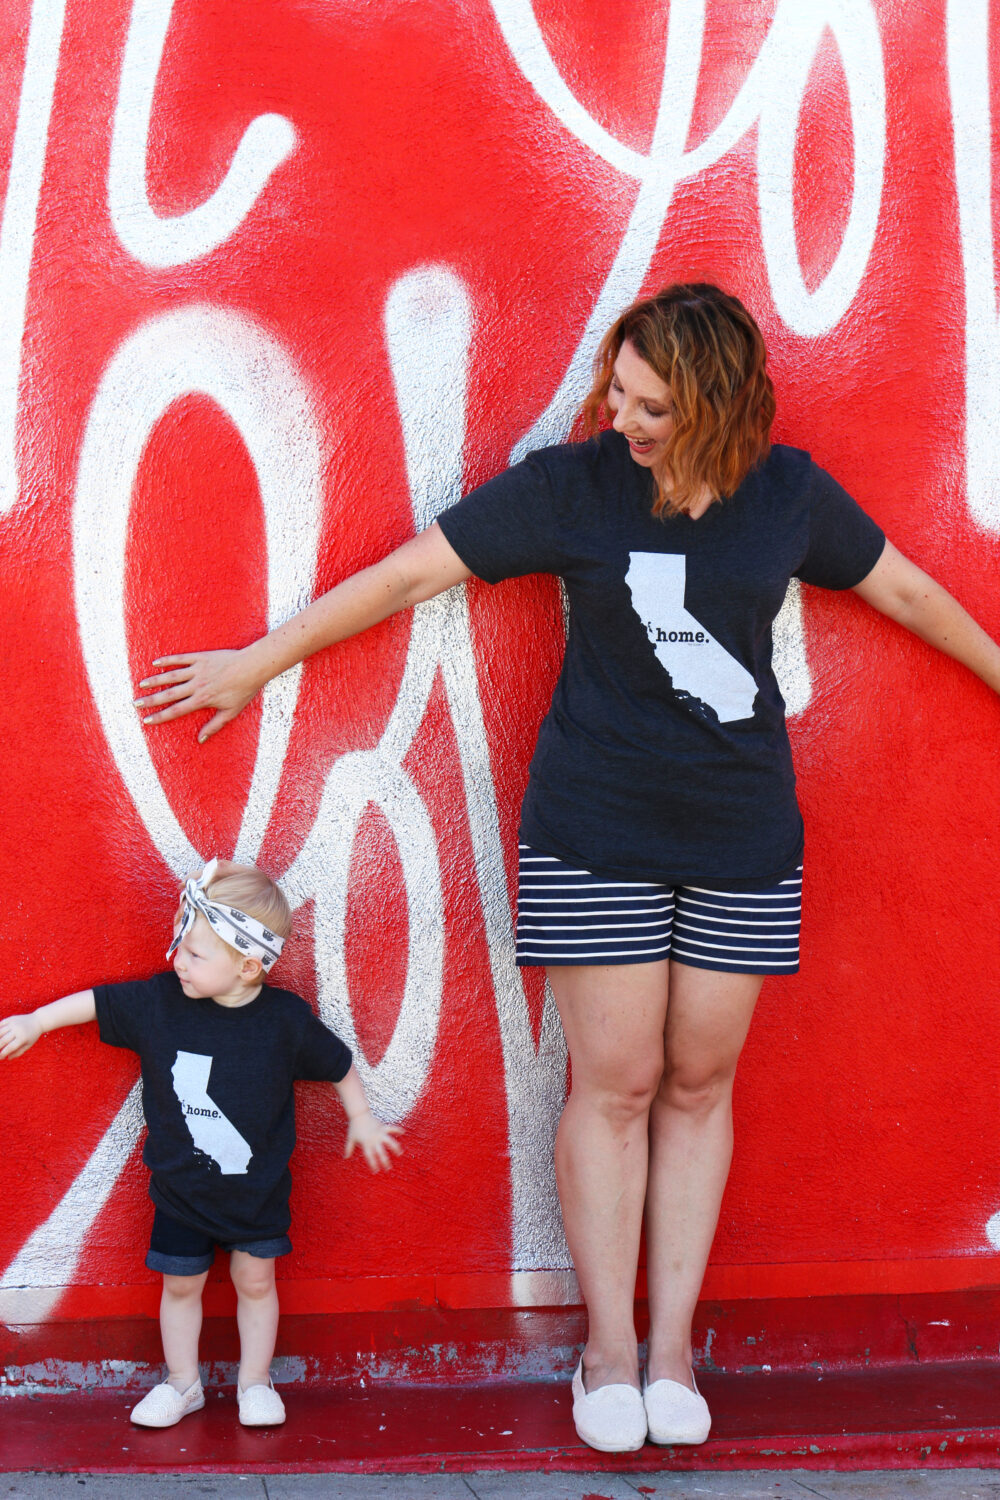 I love this casual mommy and me outfit! Those state tees are too cute, and the matching slip ons? To die for!